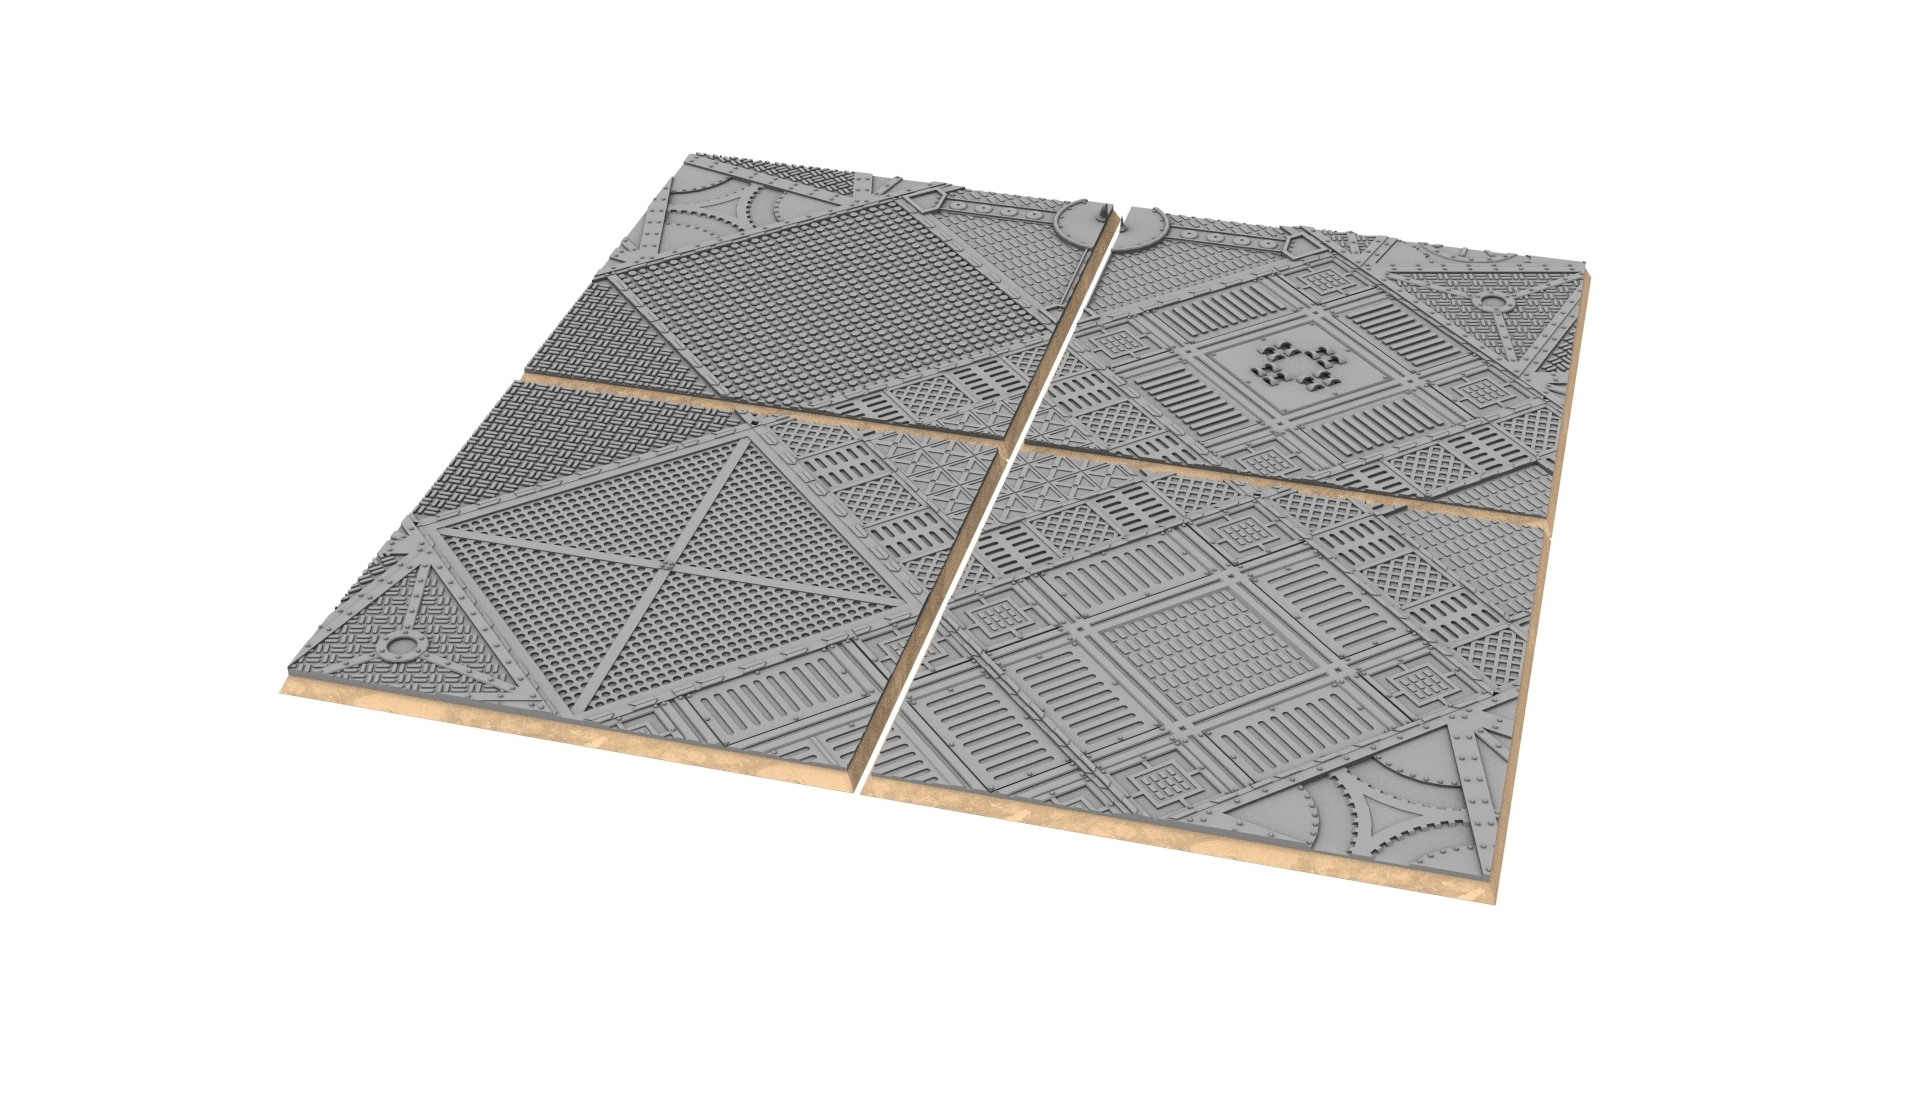 untitled.343.jpg Download STL file x1000 Round, oval, square, rectangular, hexagonal, industrial textured bases • 3D print design, Alario